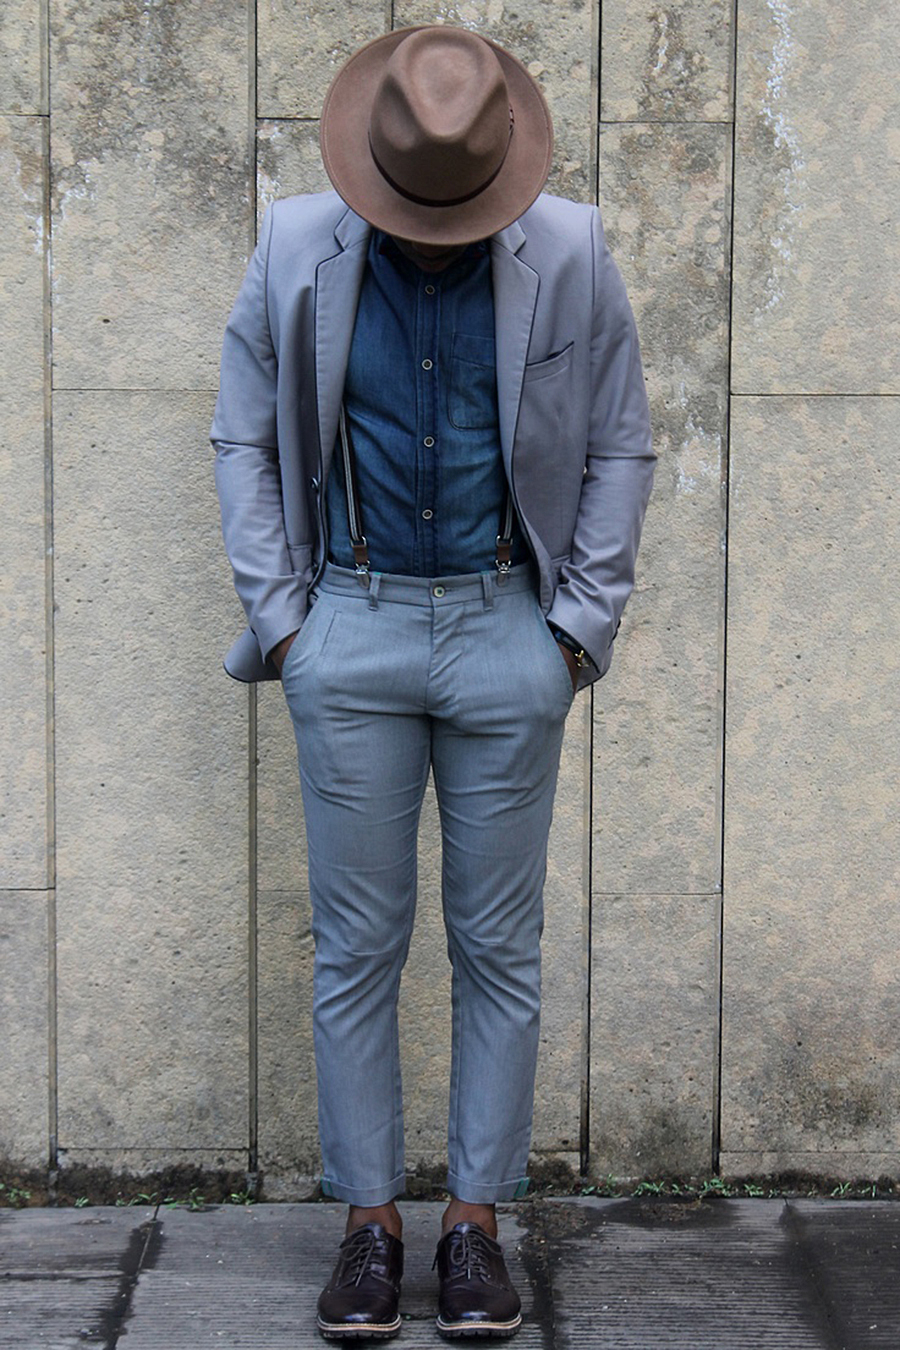 grey-suit-×-denim-shirt-×-brown-hat-menswear.jpg